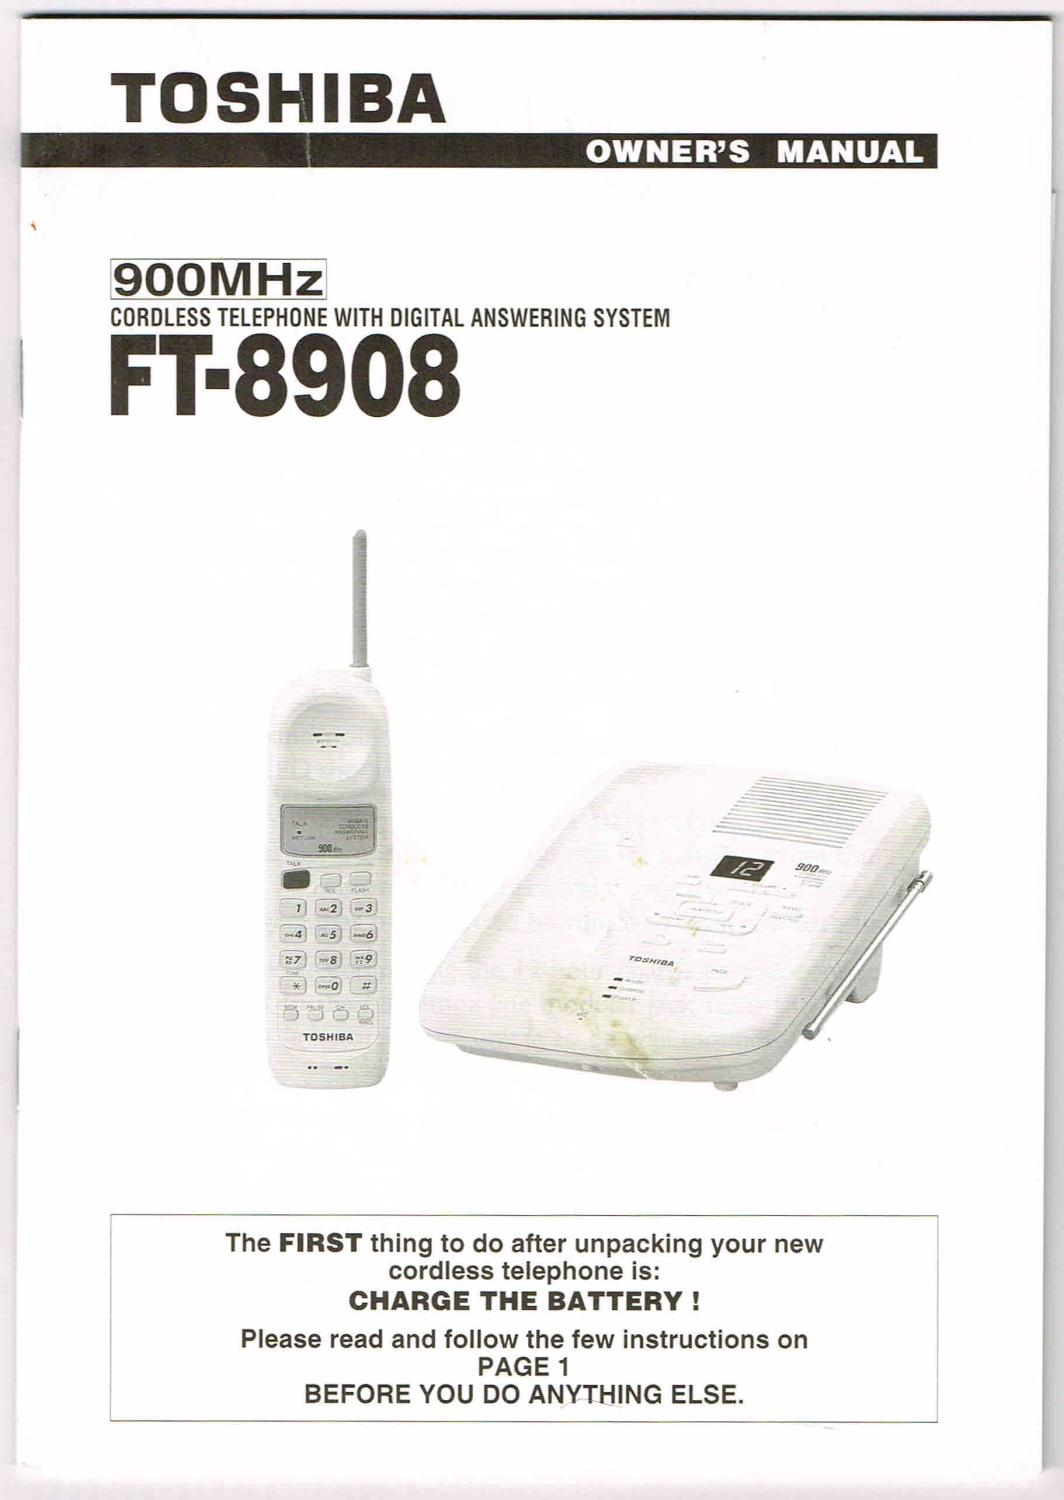 toshiba owner s manual 900mhz ft 8908 cordless telephone with rh abebooks com Cartoon Manual Car Owners Manual